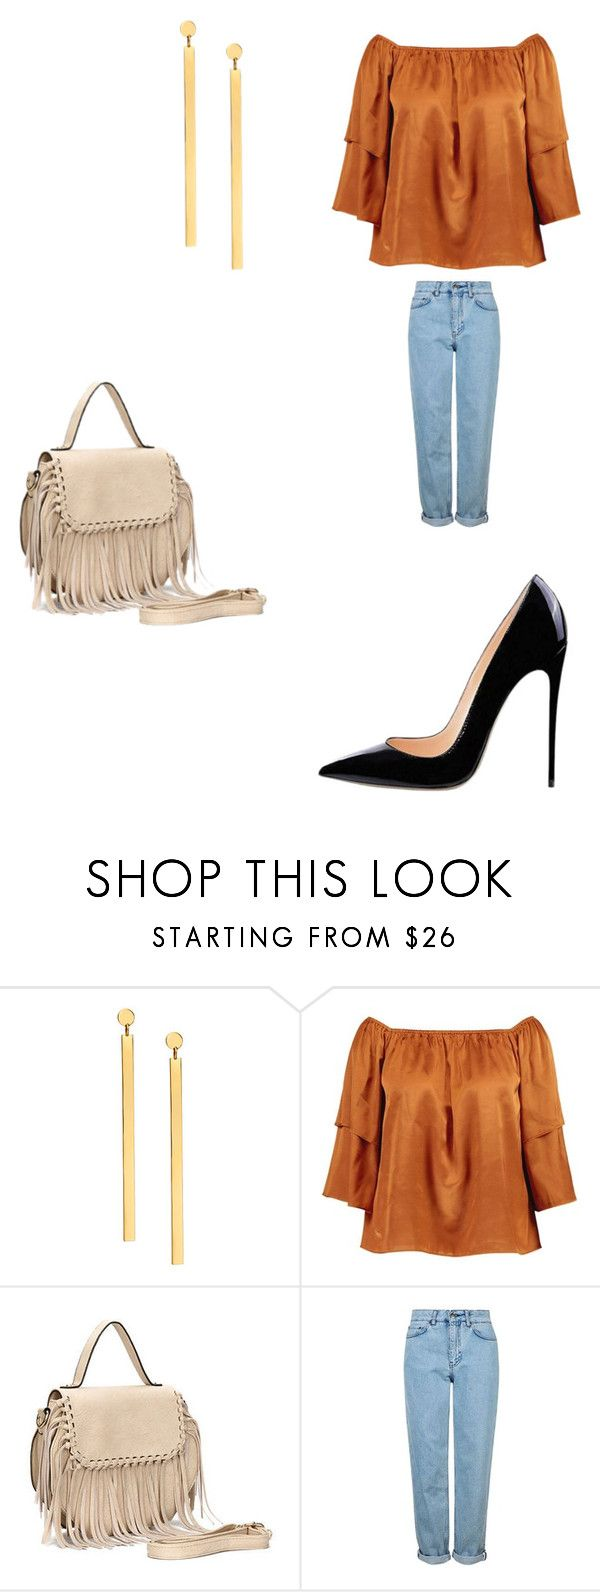 """""""Untitled #2941"""" by angfra ❤ liked on Polyvore featuring Lana, Boohoo and Topshop"""